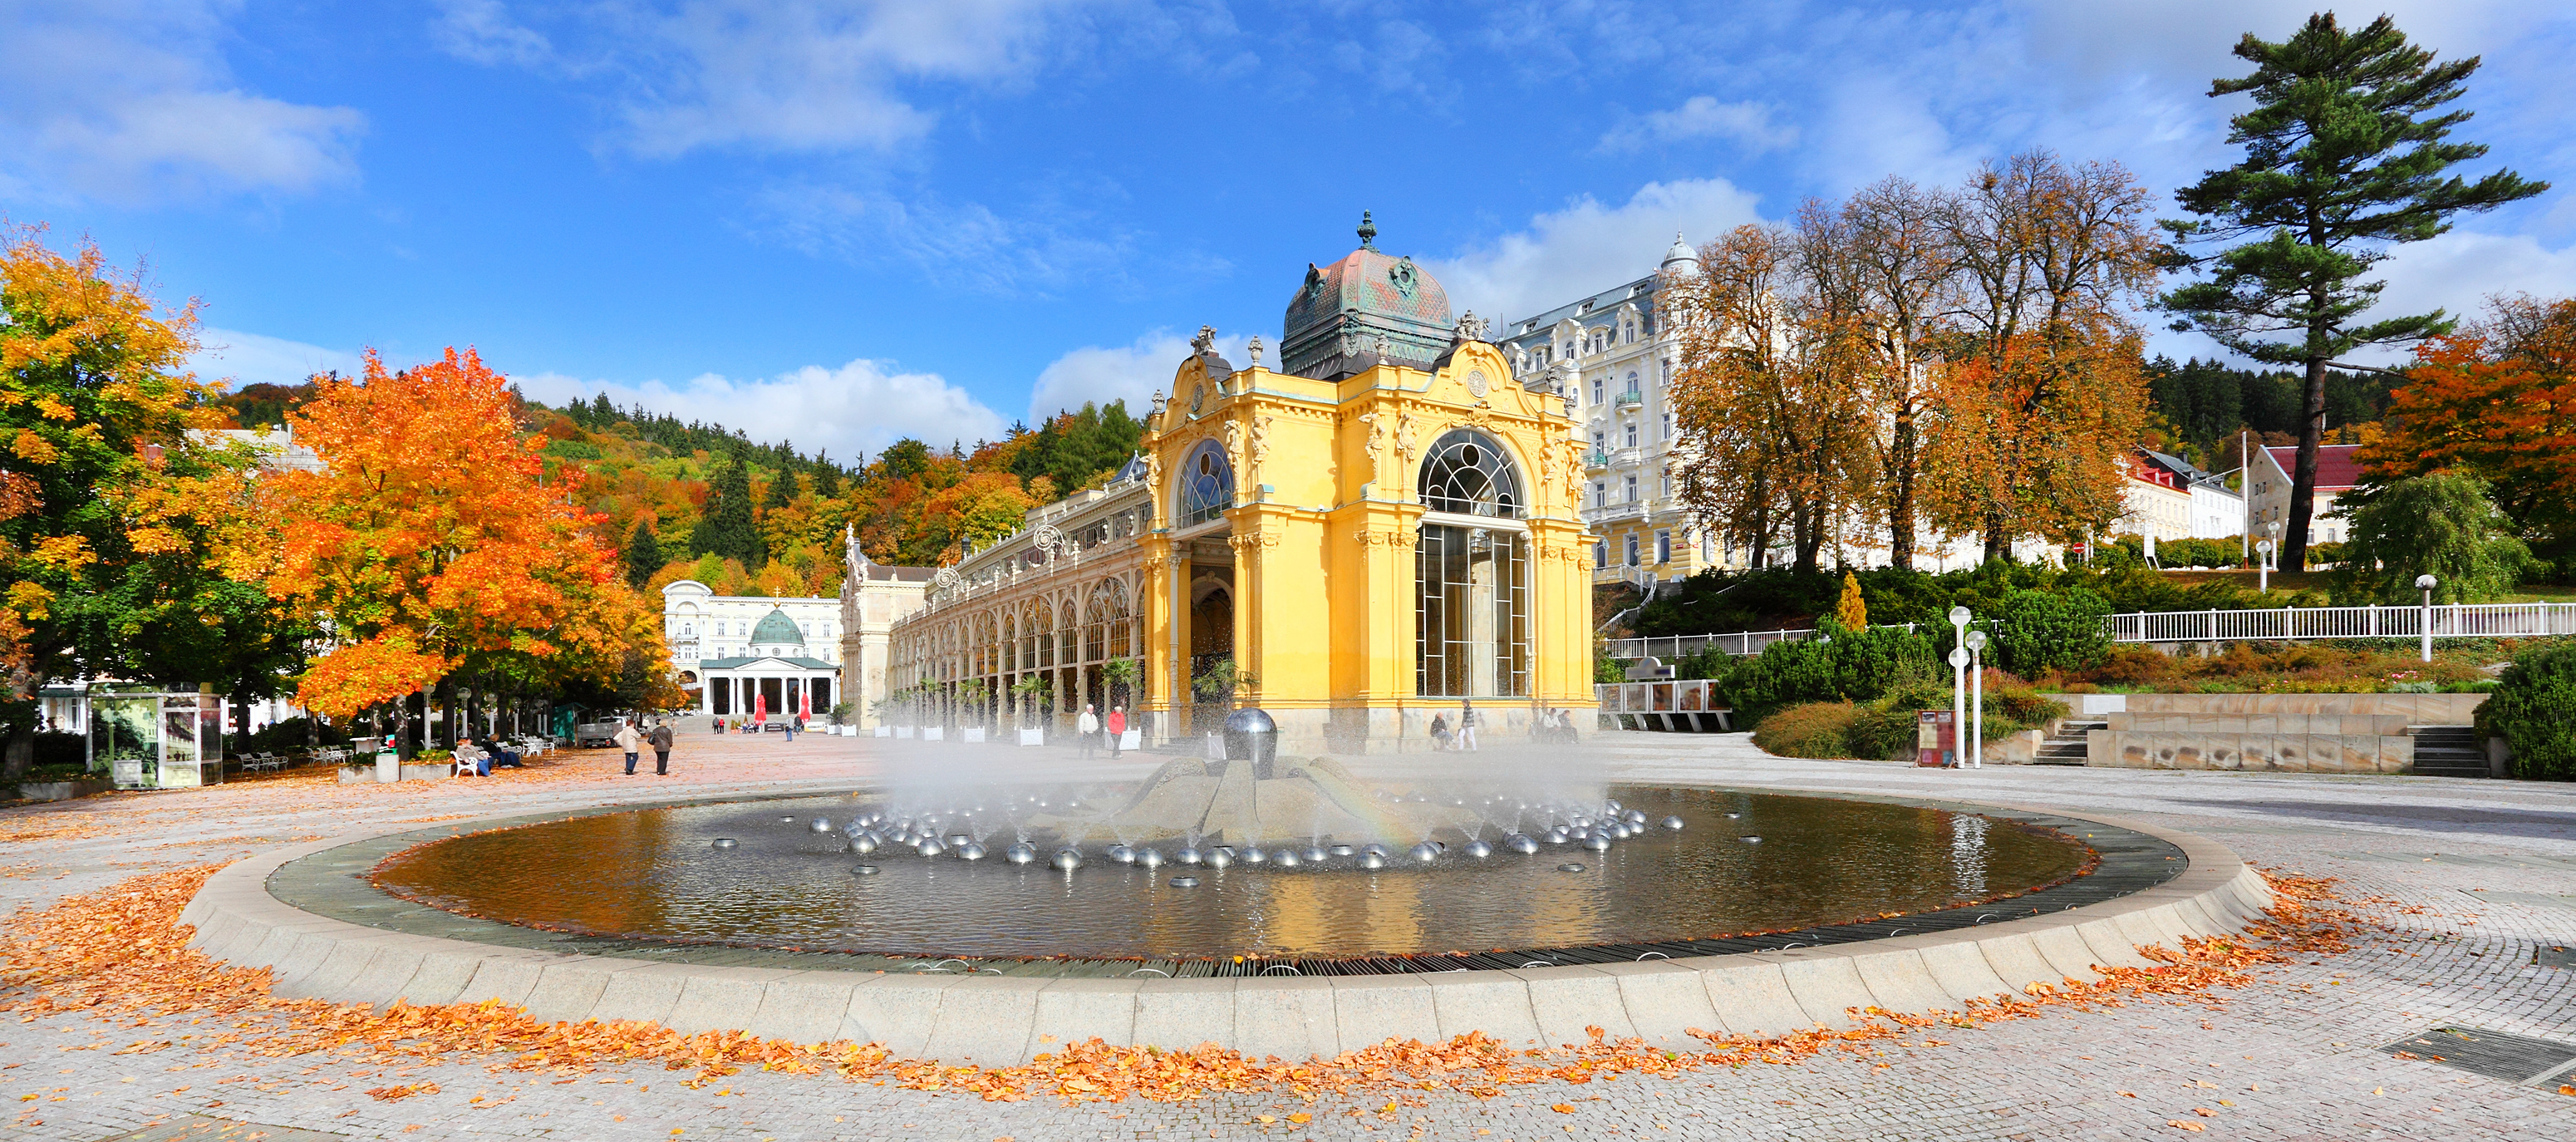 Marianske Lazne Spa, Singing fountain, Czech Republic, thermal bads, private daytrip, english tour